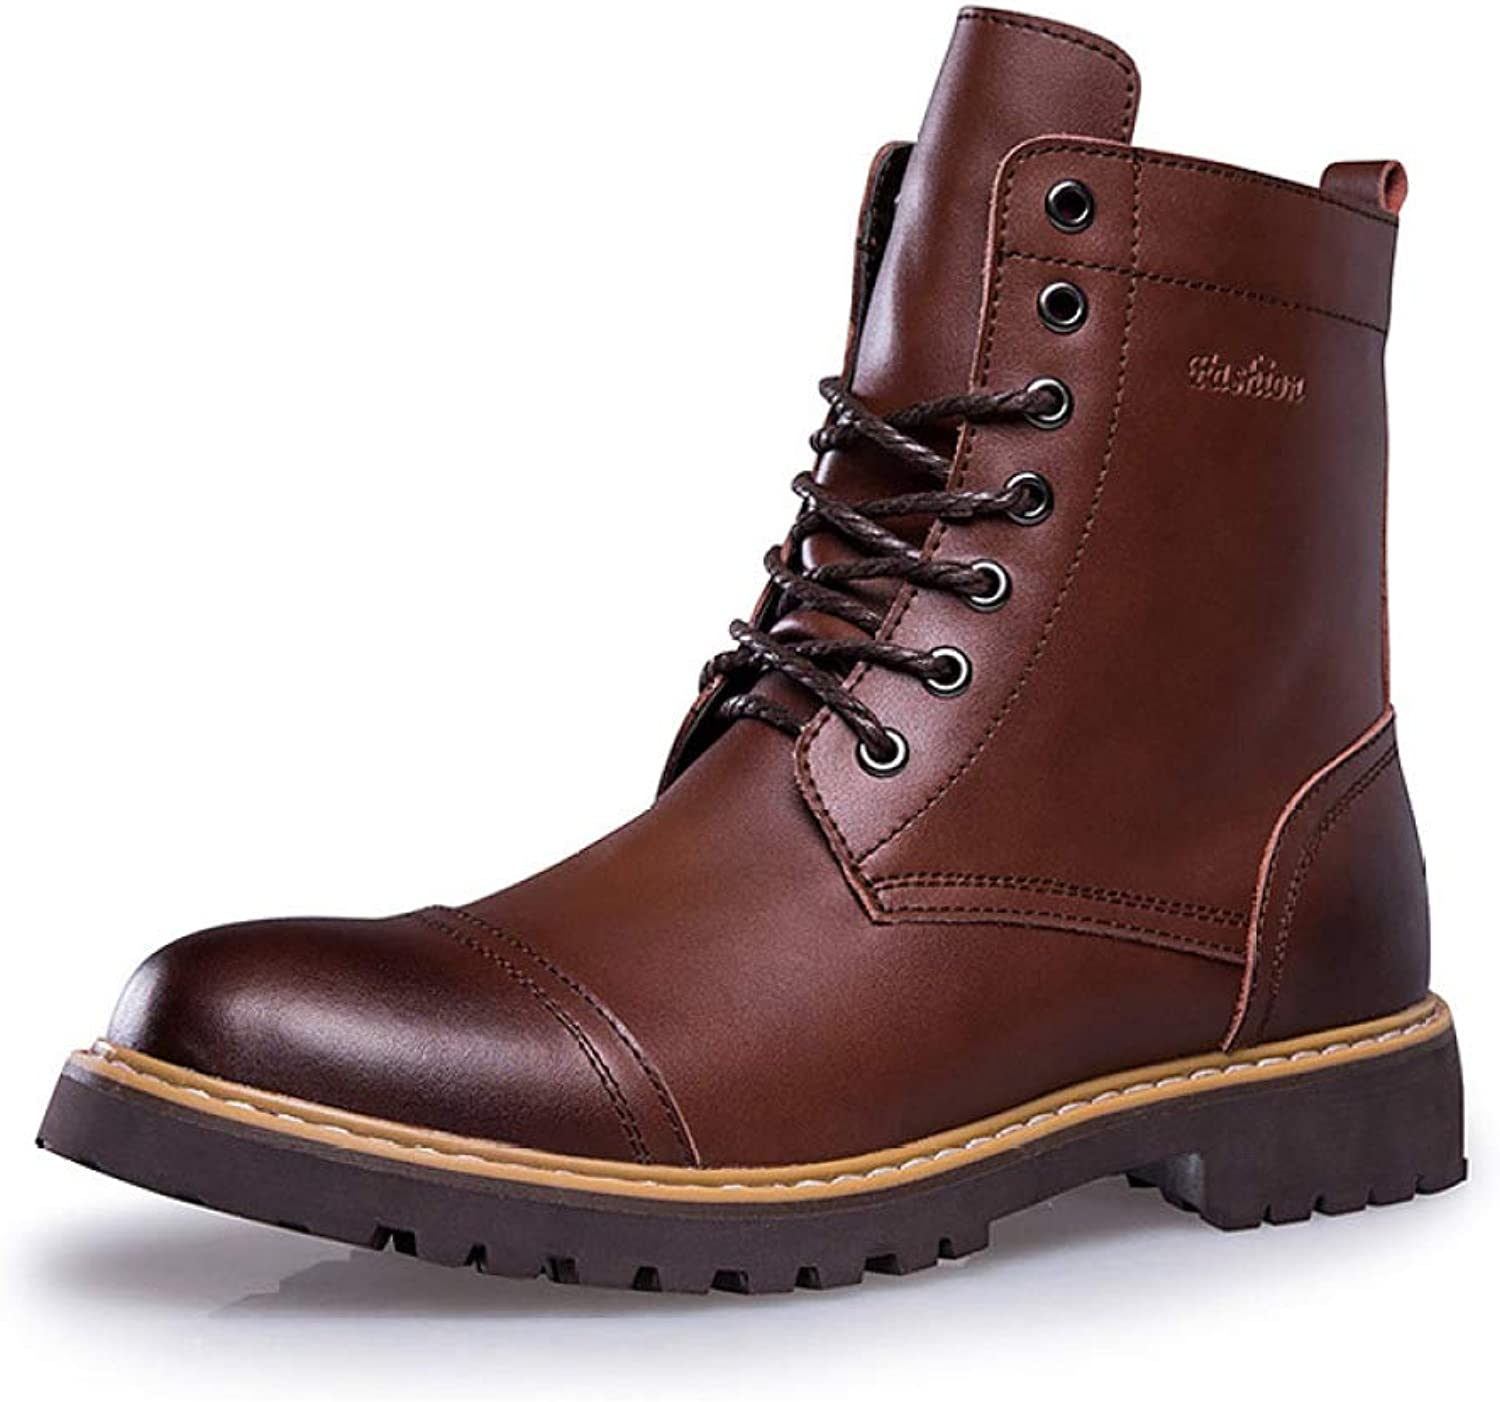 Retro Men's High-top Brogue shoes Ankle Boots Martin Boots Outdoor Trekking Hiking Boots Work Security Desesrt shoes Boots